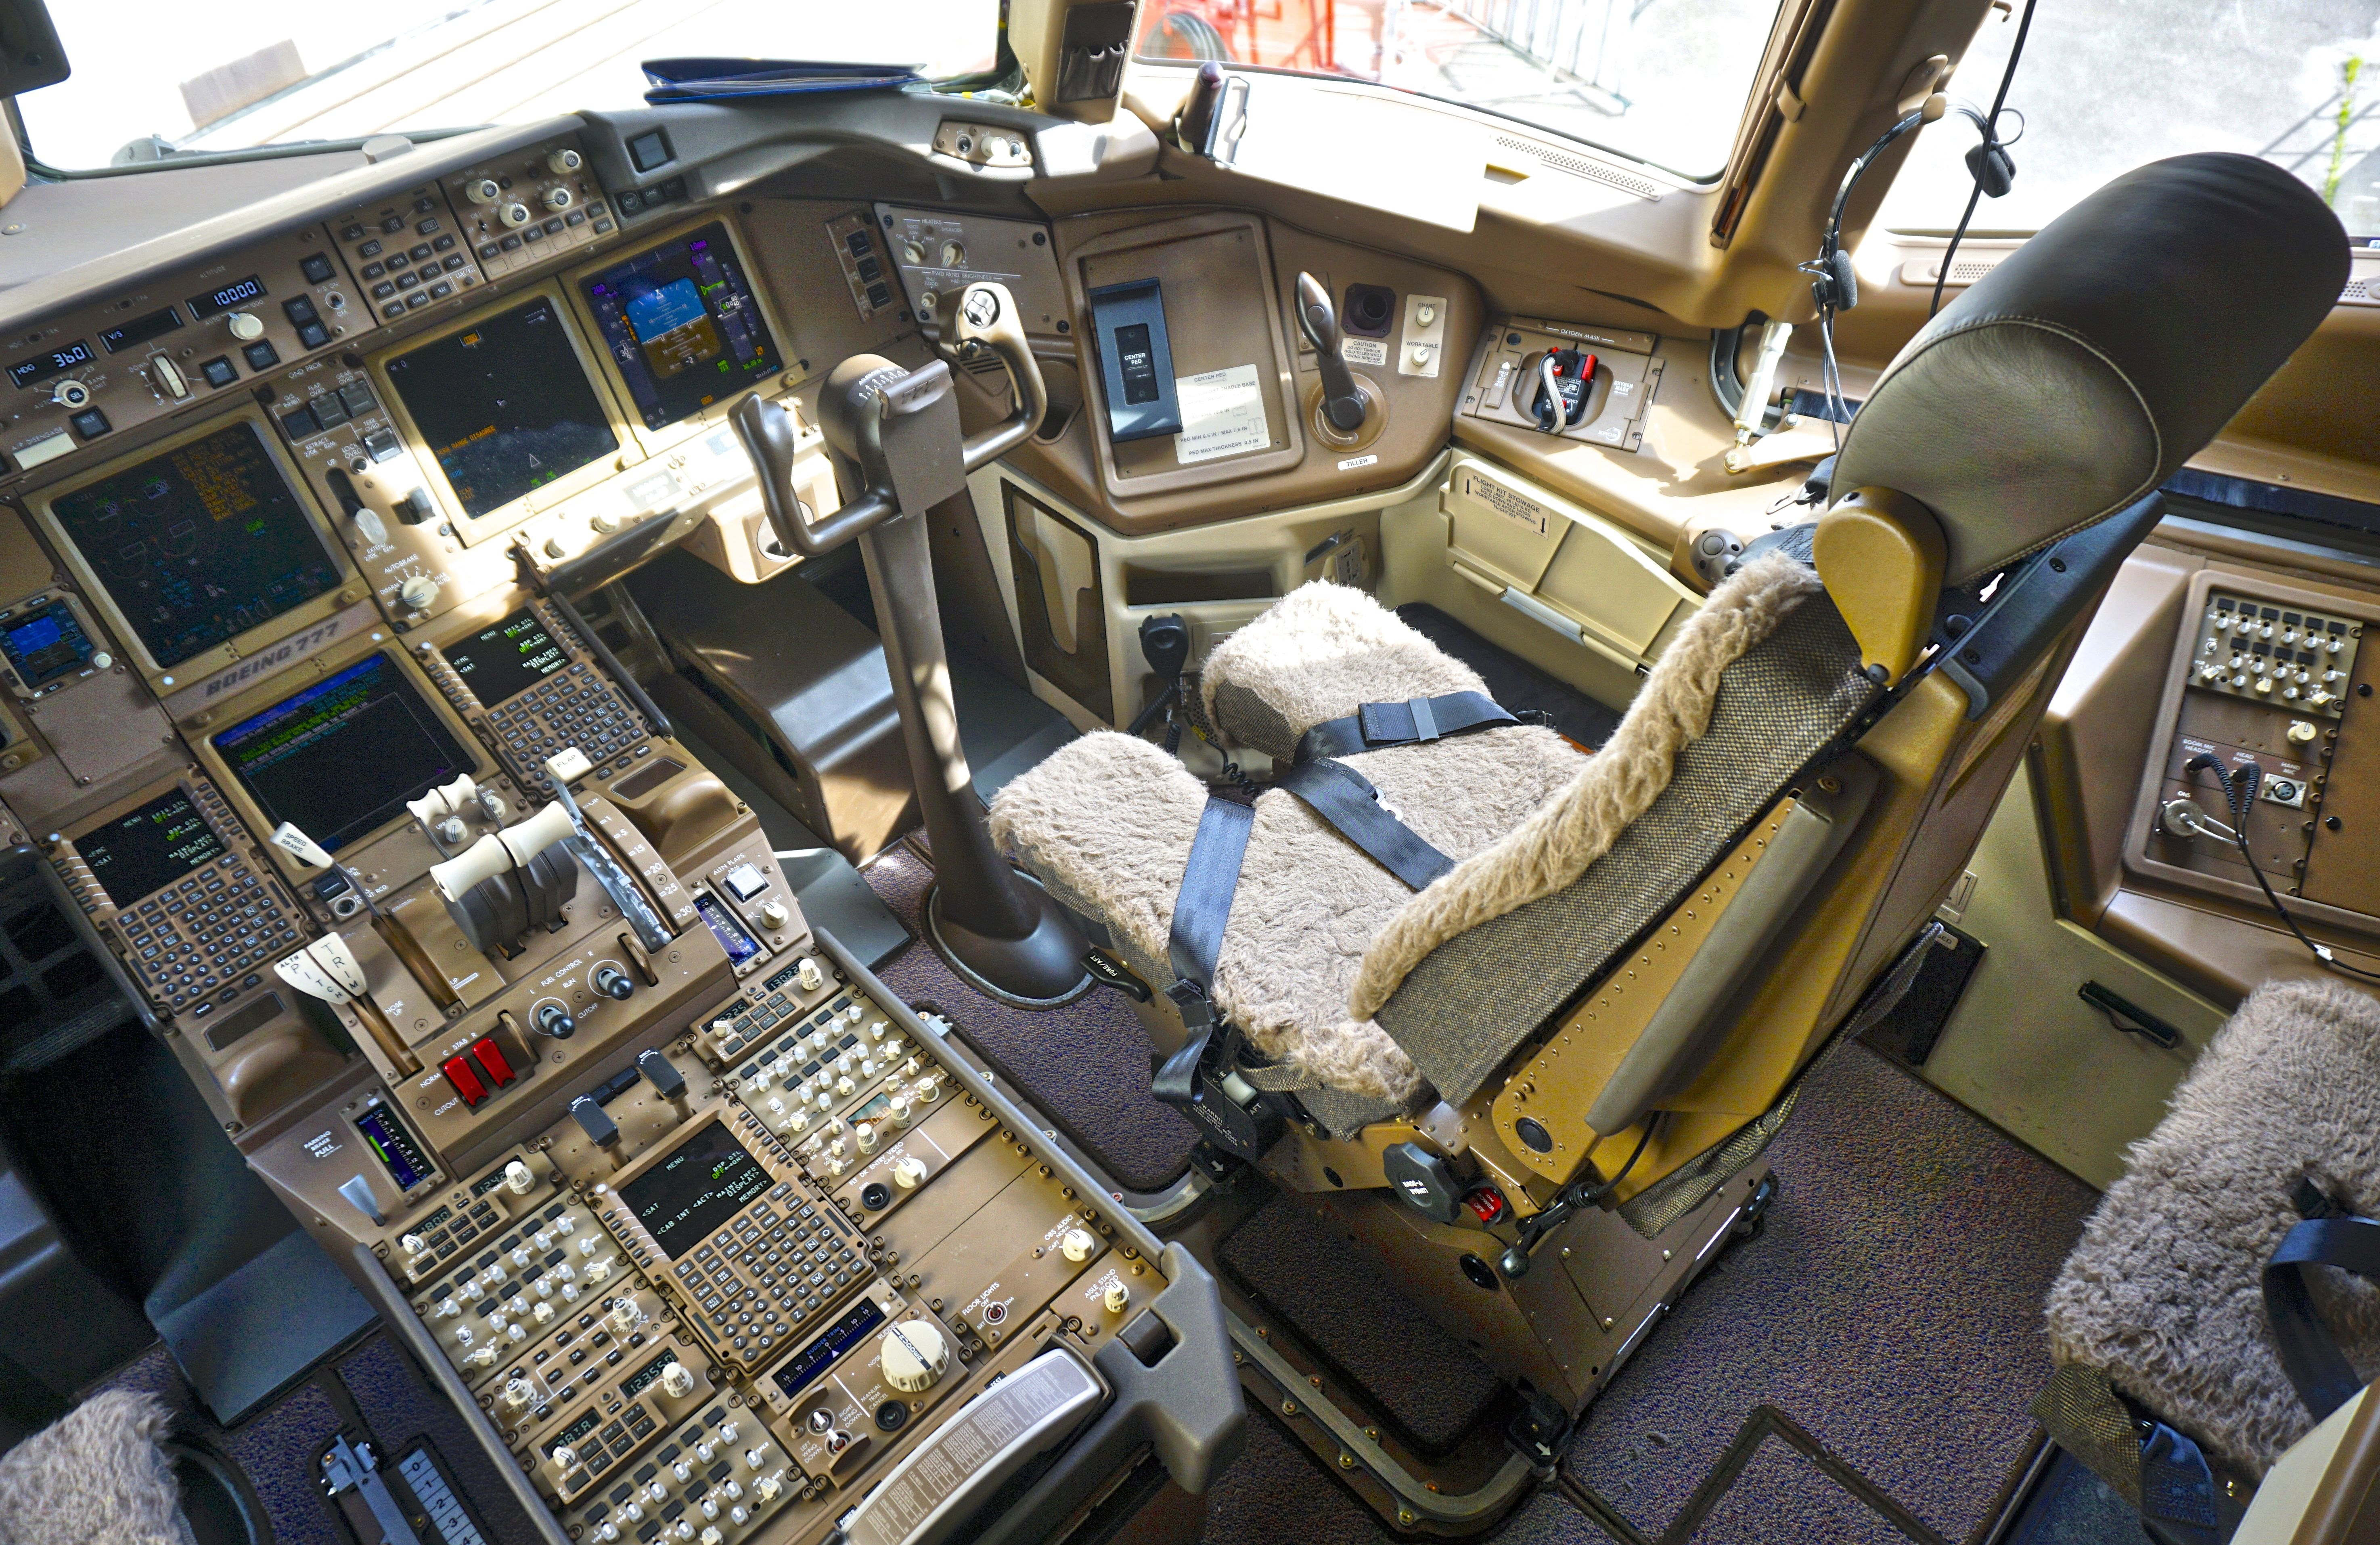 Cutaway of a pan am boeing 377 stratocruiser image from chris sloan - Boeing 747 4u3 Aircraft Picture Aircraft Interiors Cockpit Flight Deck Cabin Cargo Bays Pinterest Flight Deck Boeing 747 And Aircraft